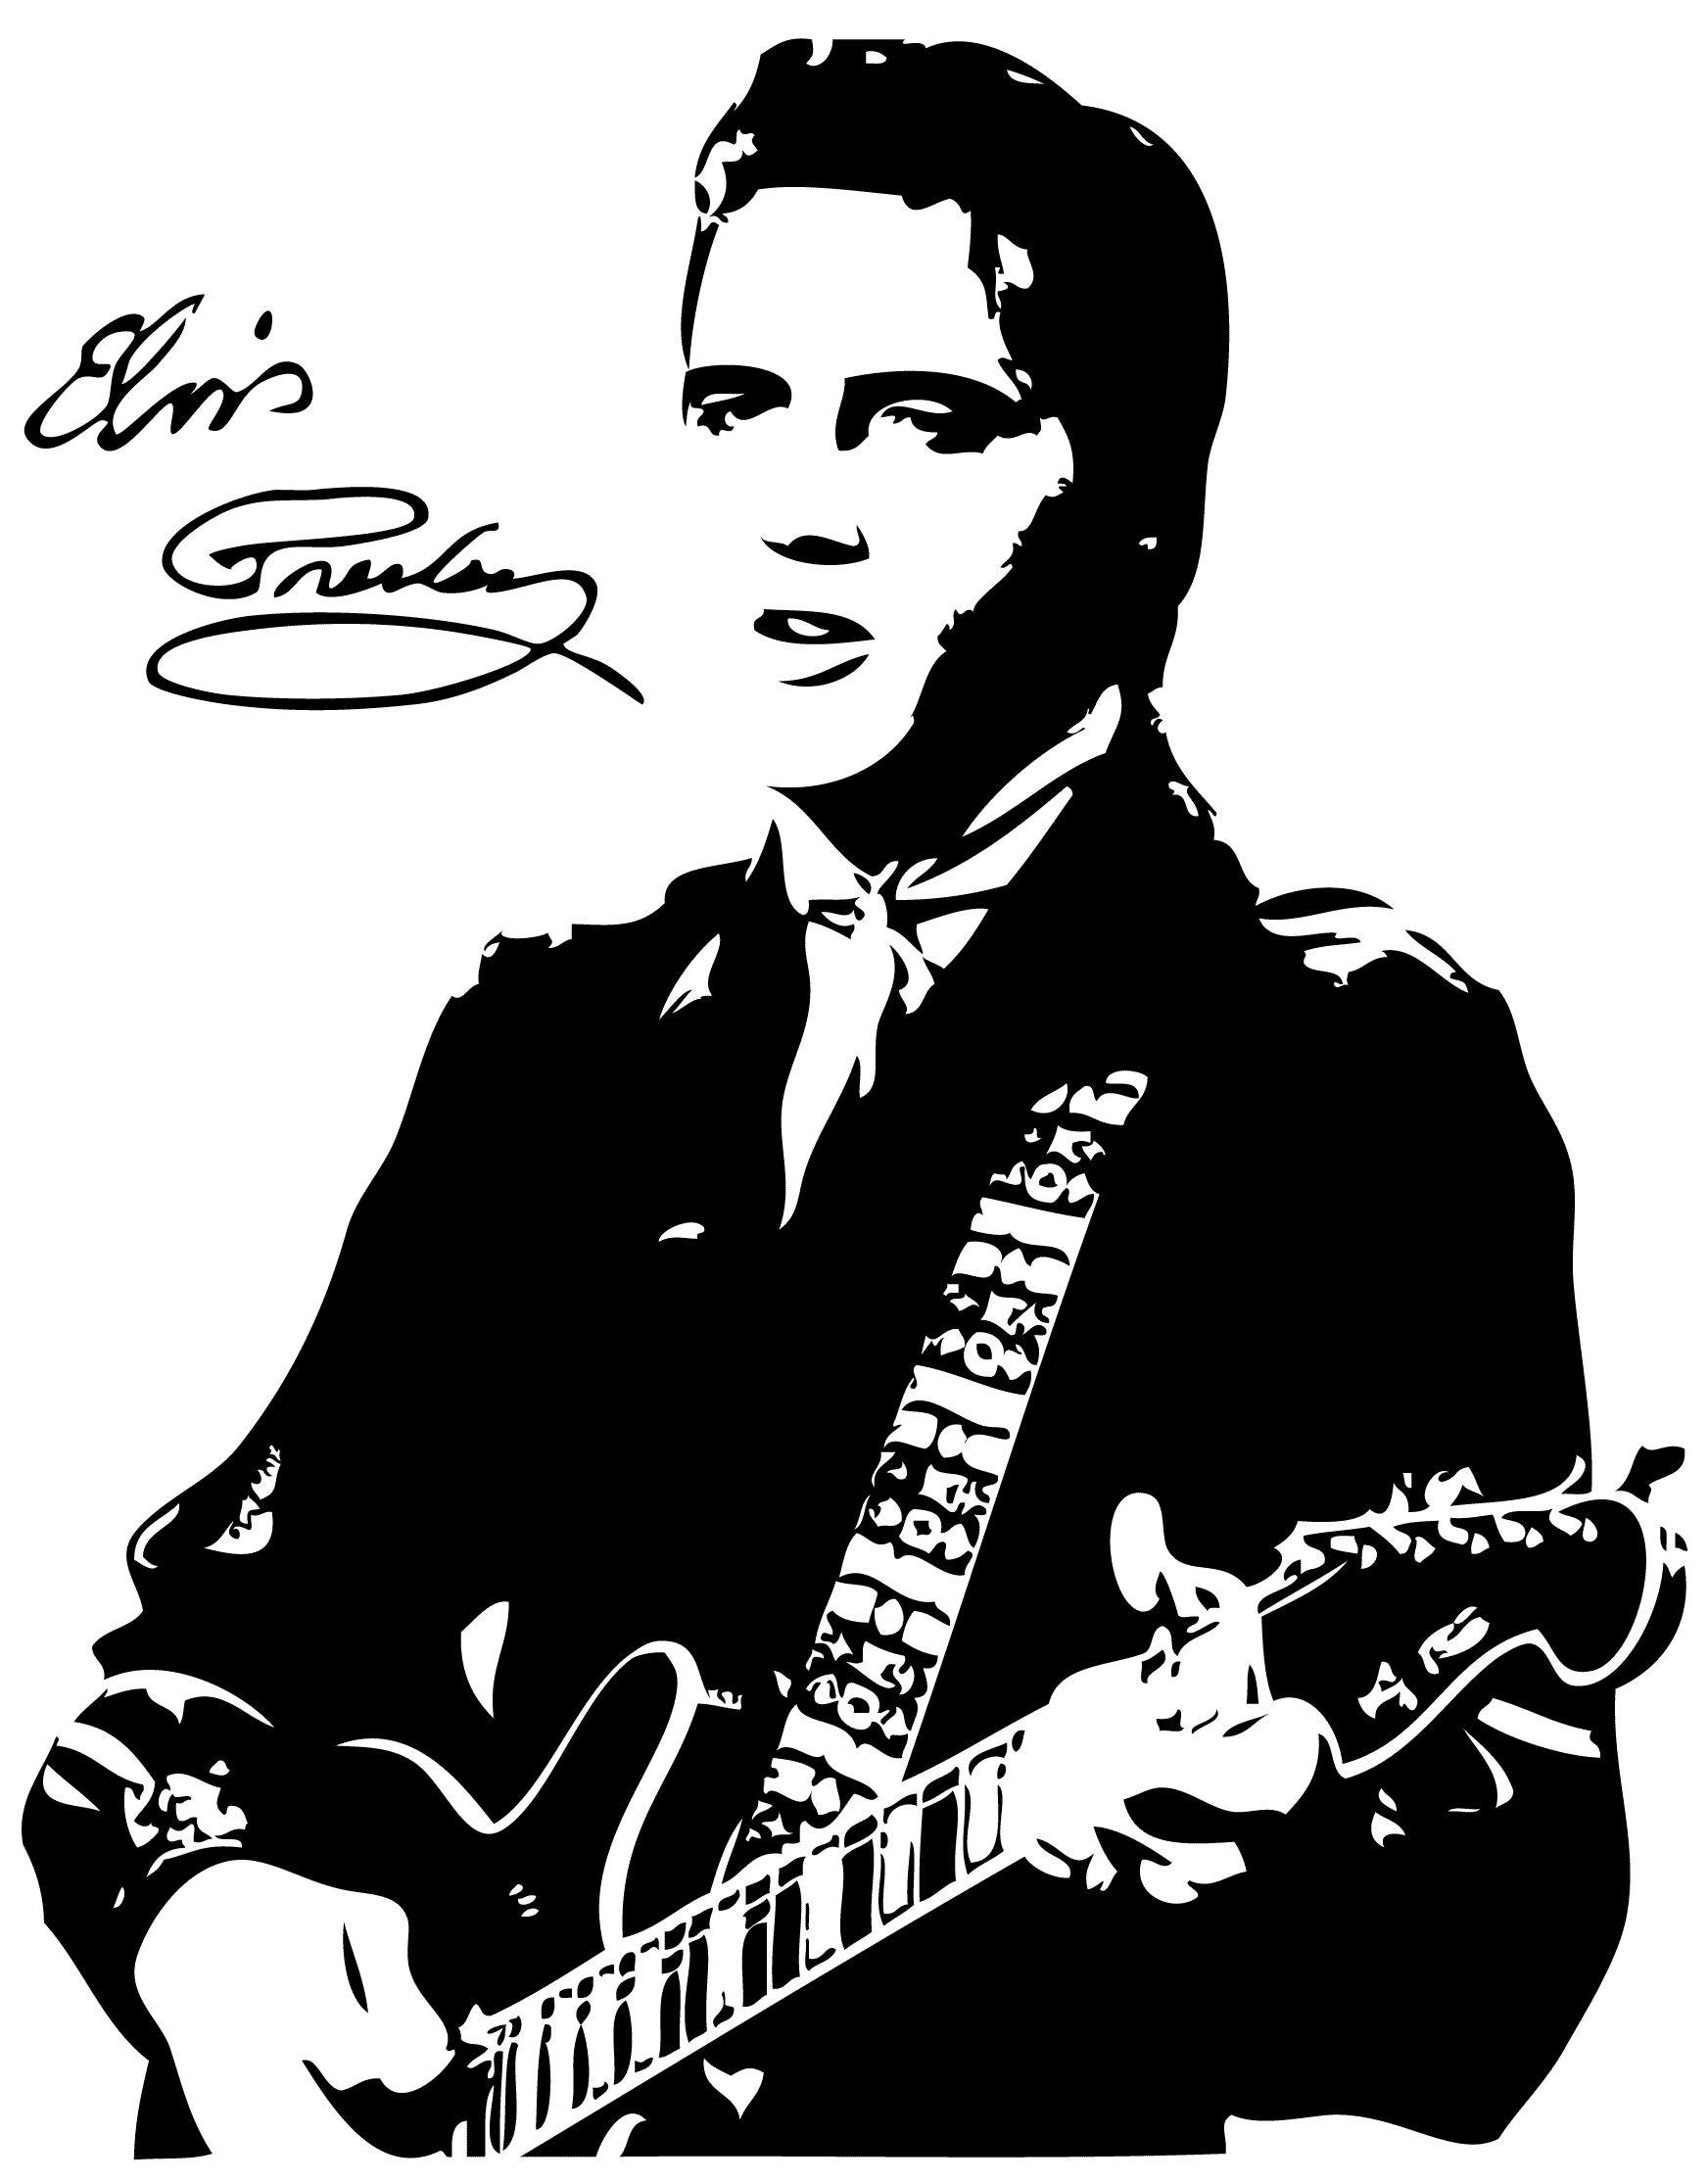 Elvis cliparts - Free Elvis PNG